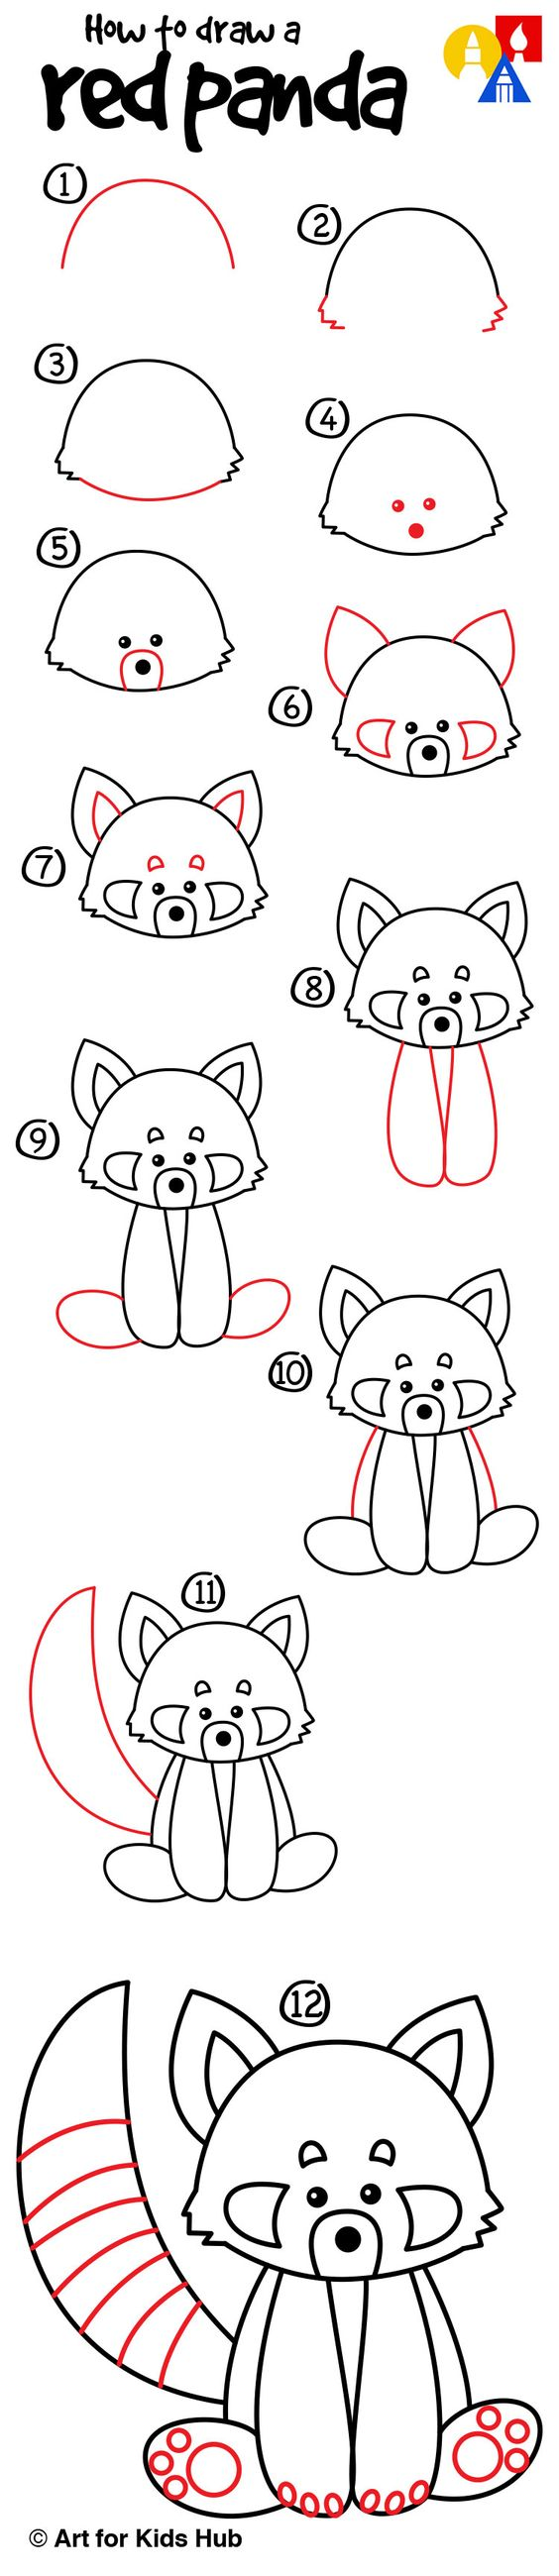 How To Draw A Cartoon Red Panda Step By